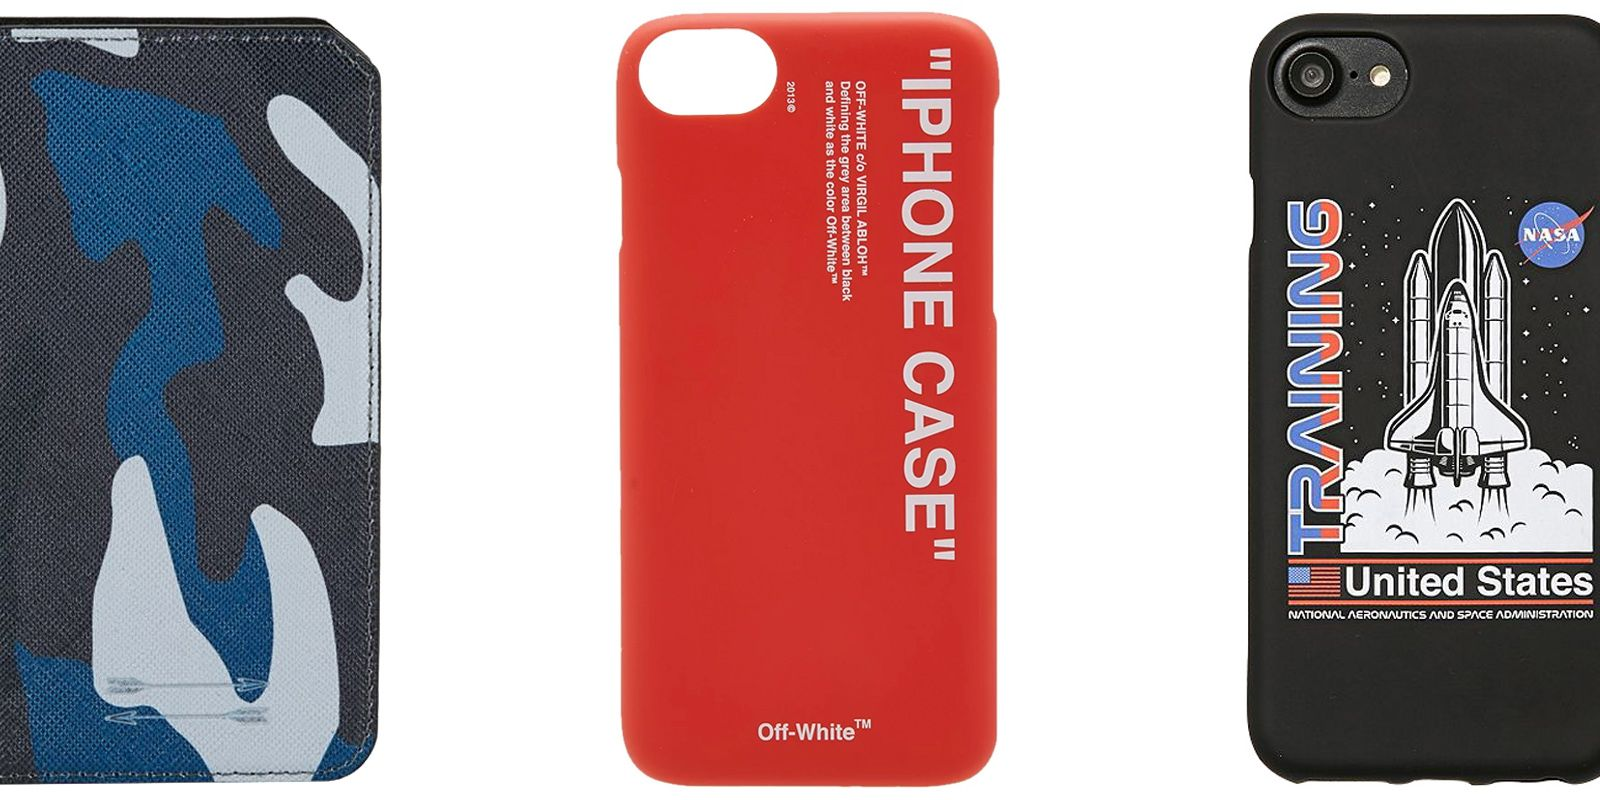 9 best iphone cases 2018 stylish cases to keep your phone safecourtesy you are mightily tempting fate if you walk around without a case on your phone